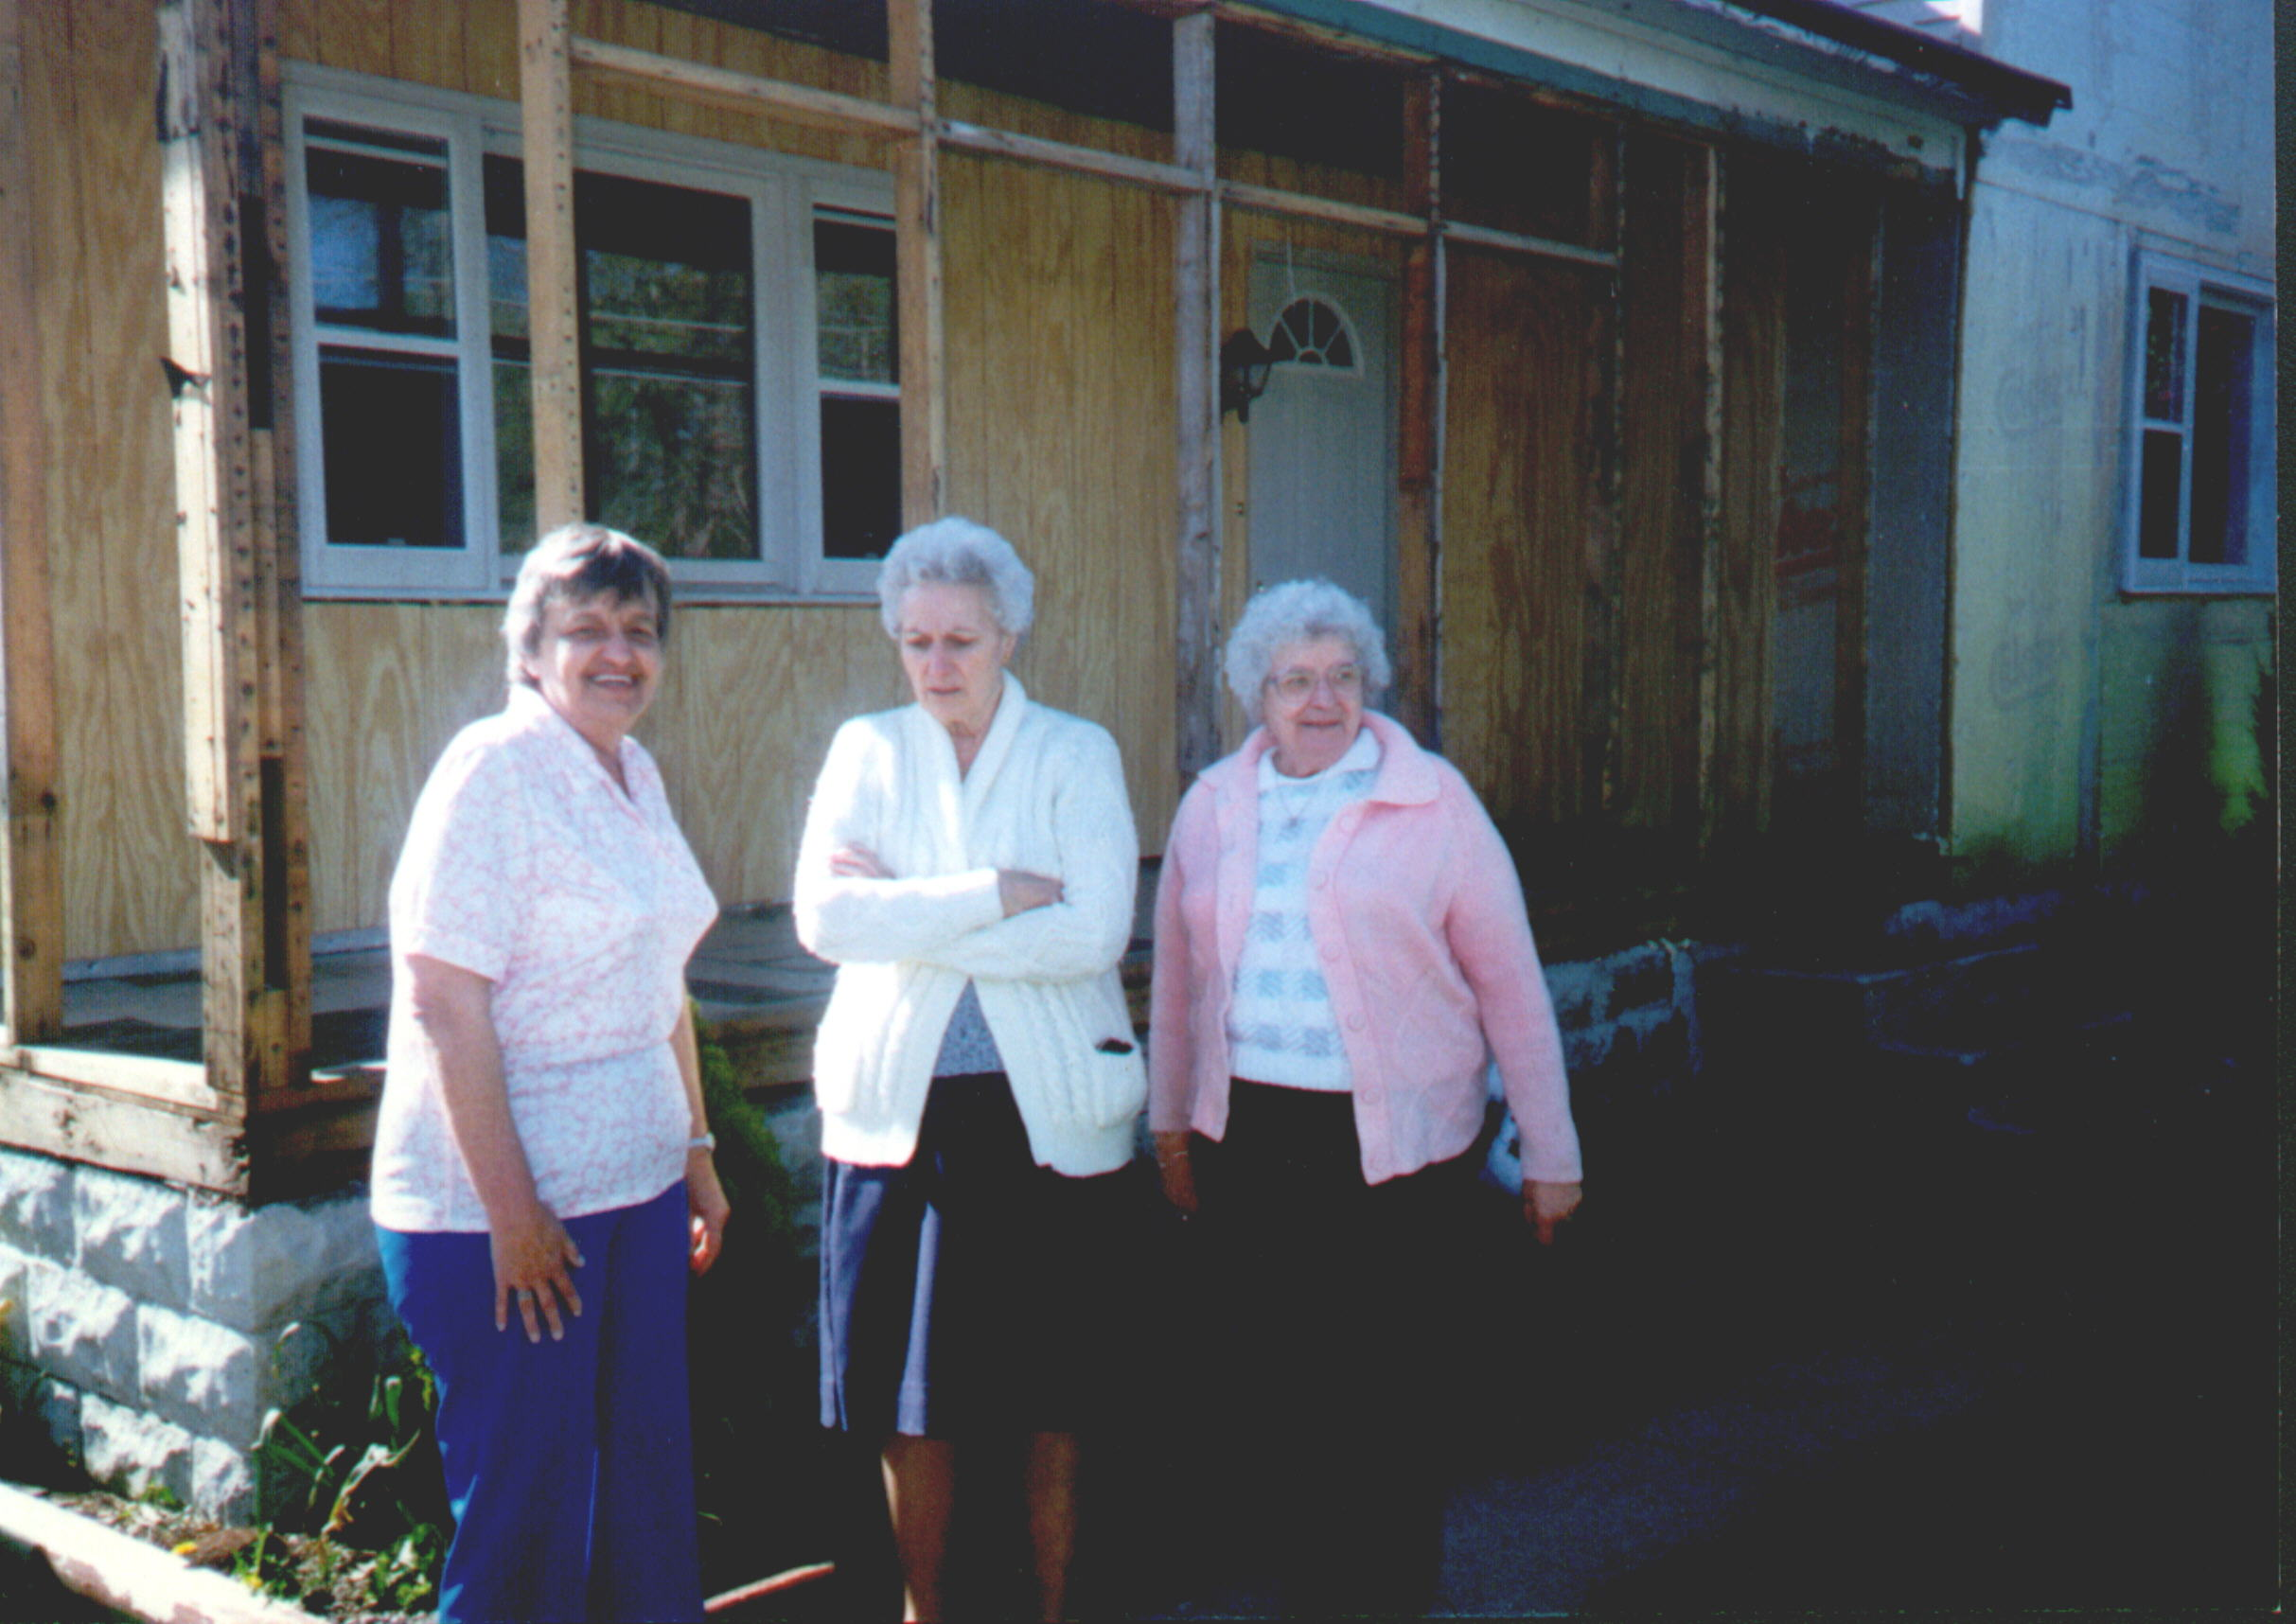 Joan Thines, Gertrude Franclemont, and Marge Thines in 1991